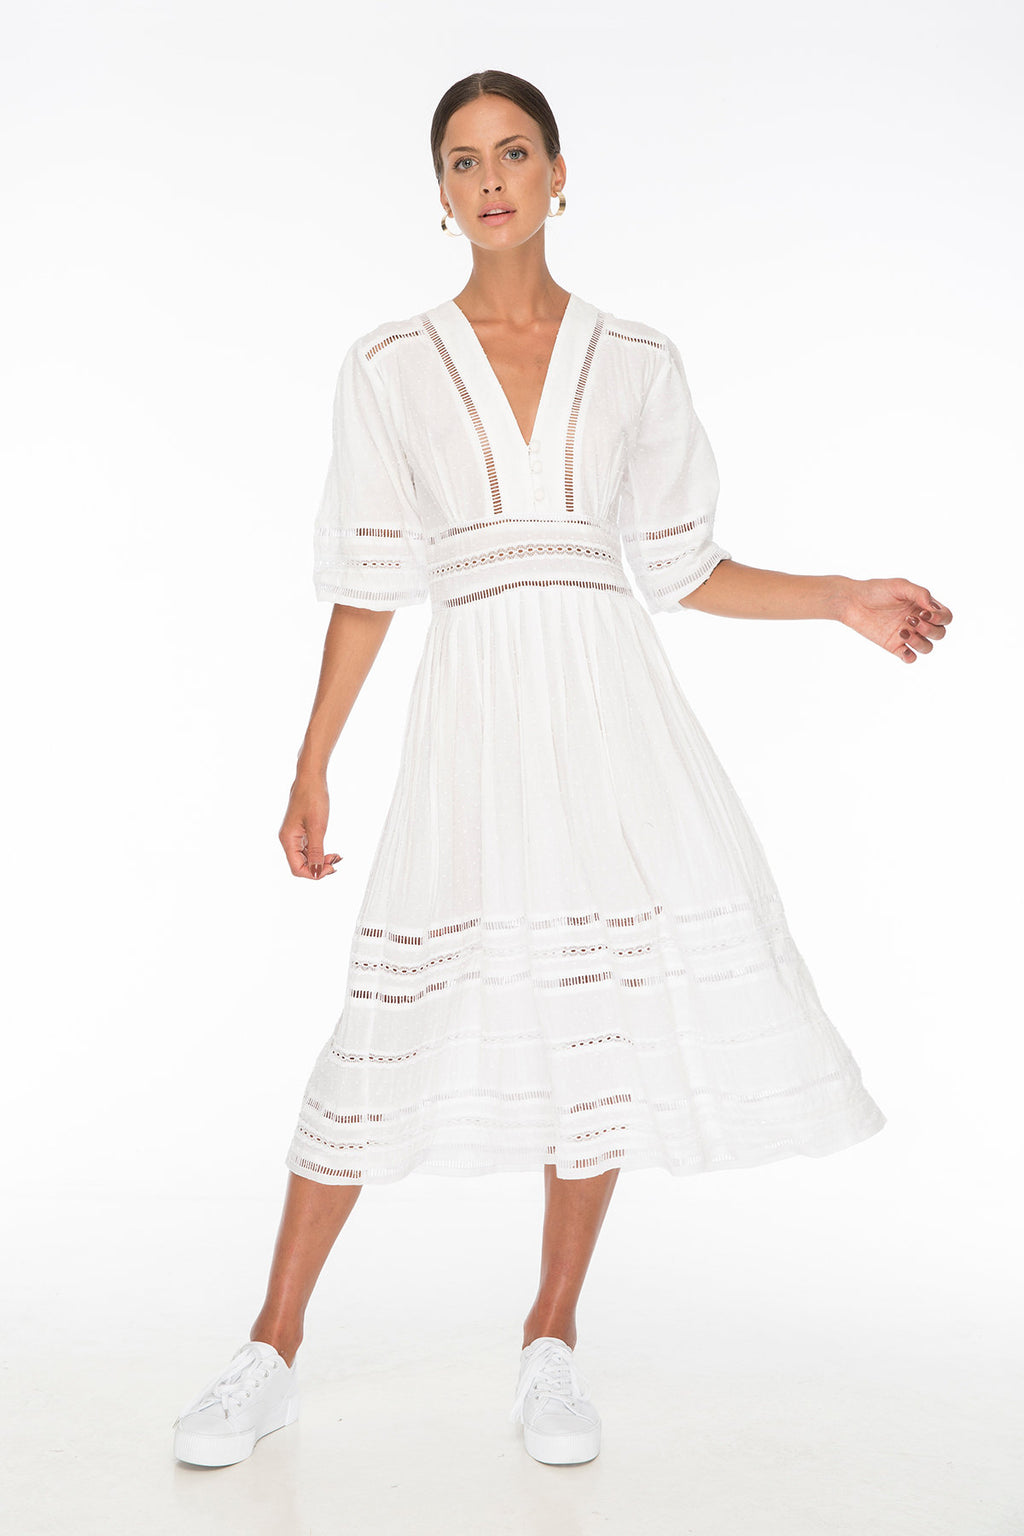 TSO-Tayla White Dress - Zuttion